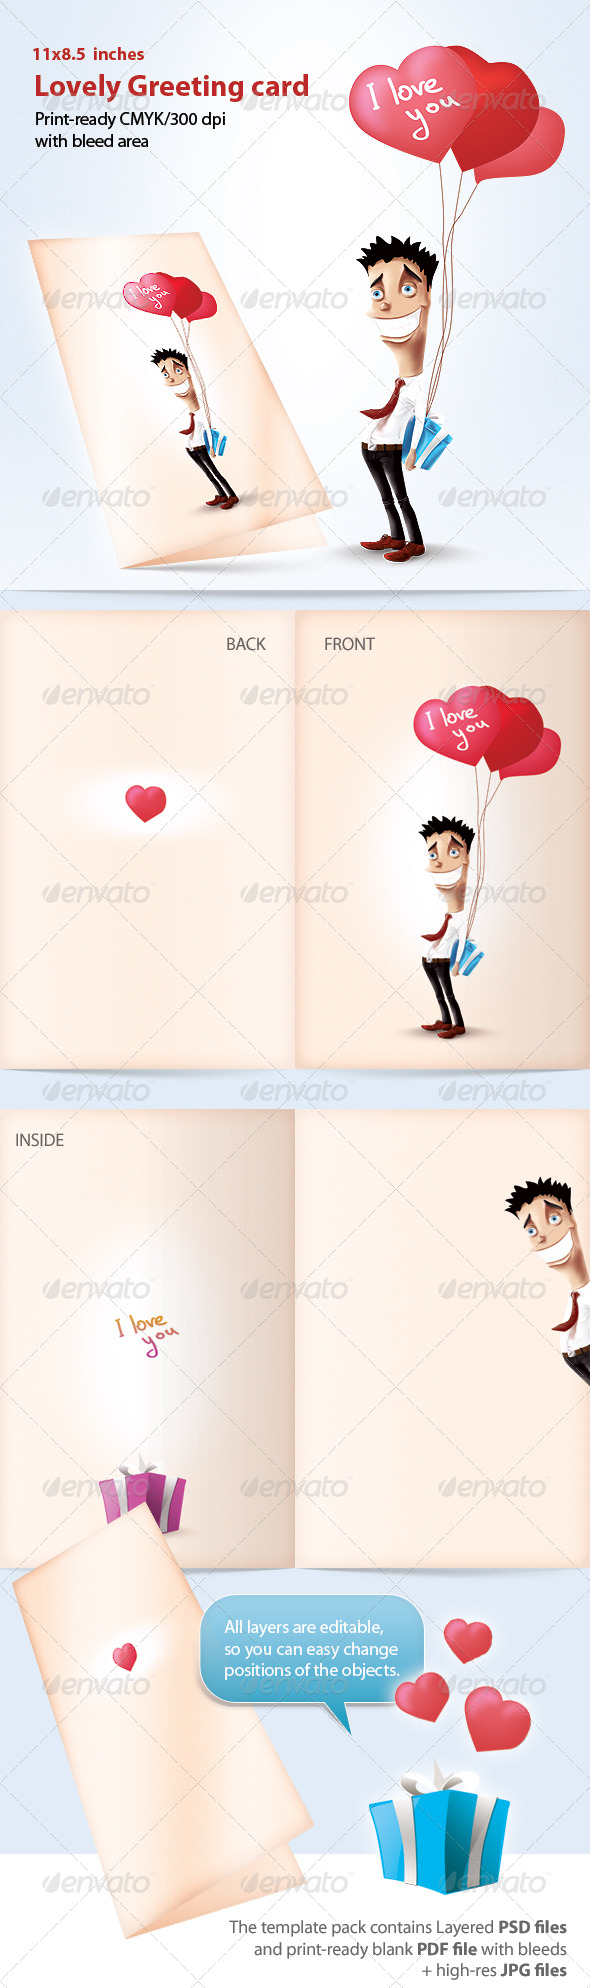 GraphicRiver Lovely Greeting Card 150407